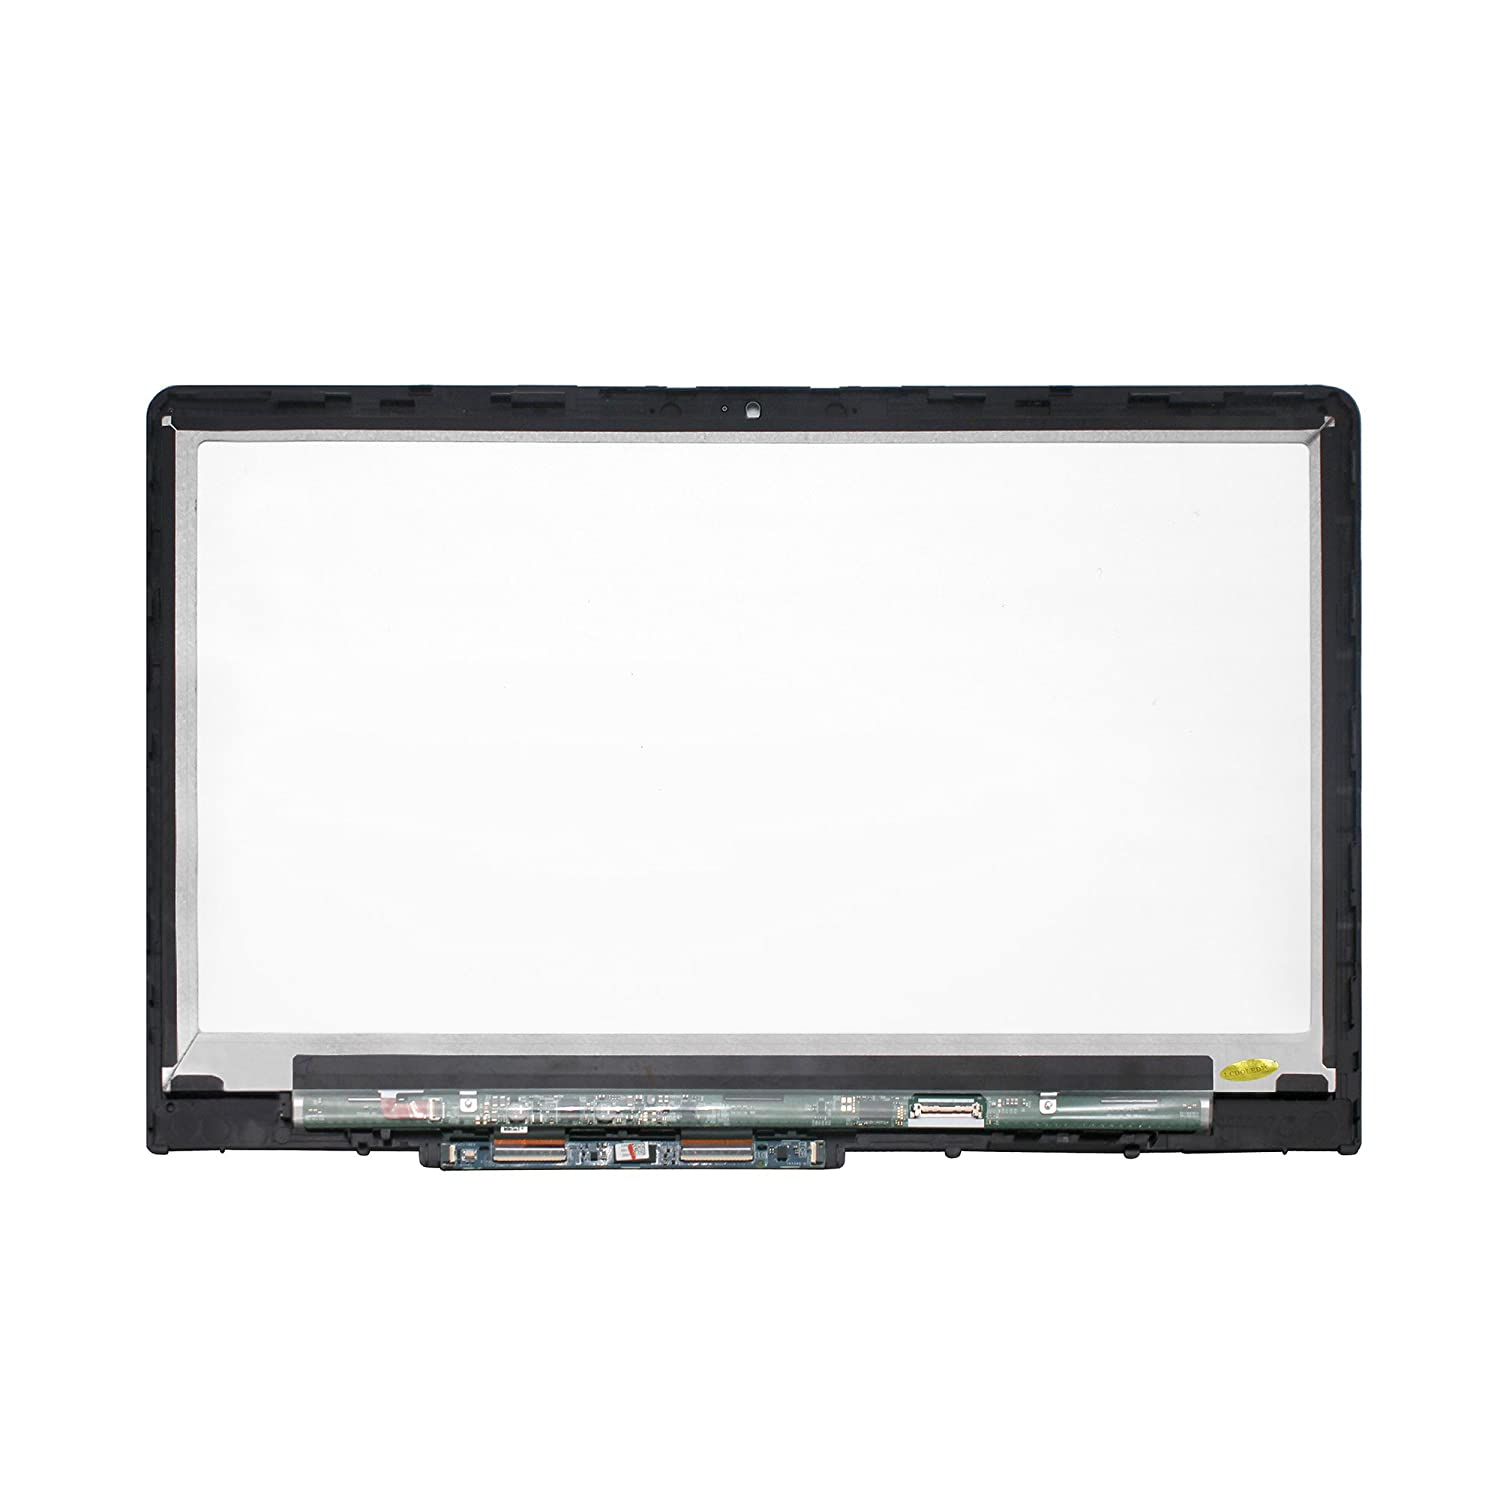 LCDOLED 15.6 FullHD IPS LCD Display Touch Screen Digitizer Assembly Bezel For HP Pavilion x360 15-br000 15-br100 15g-br000 15g-br100 15-br010nr 15-br077nr 15-br077cl 15-br095ms With ControlBoard